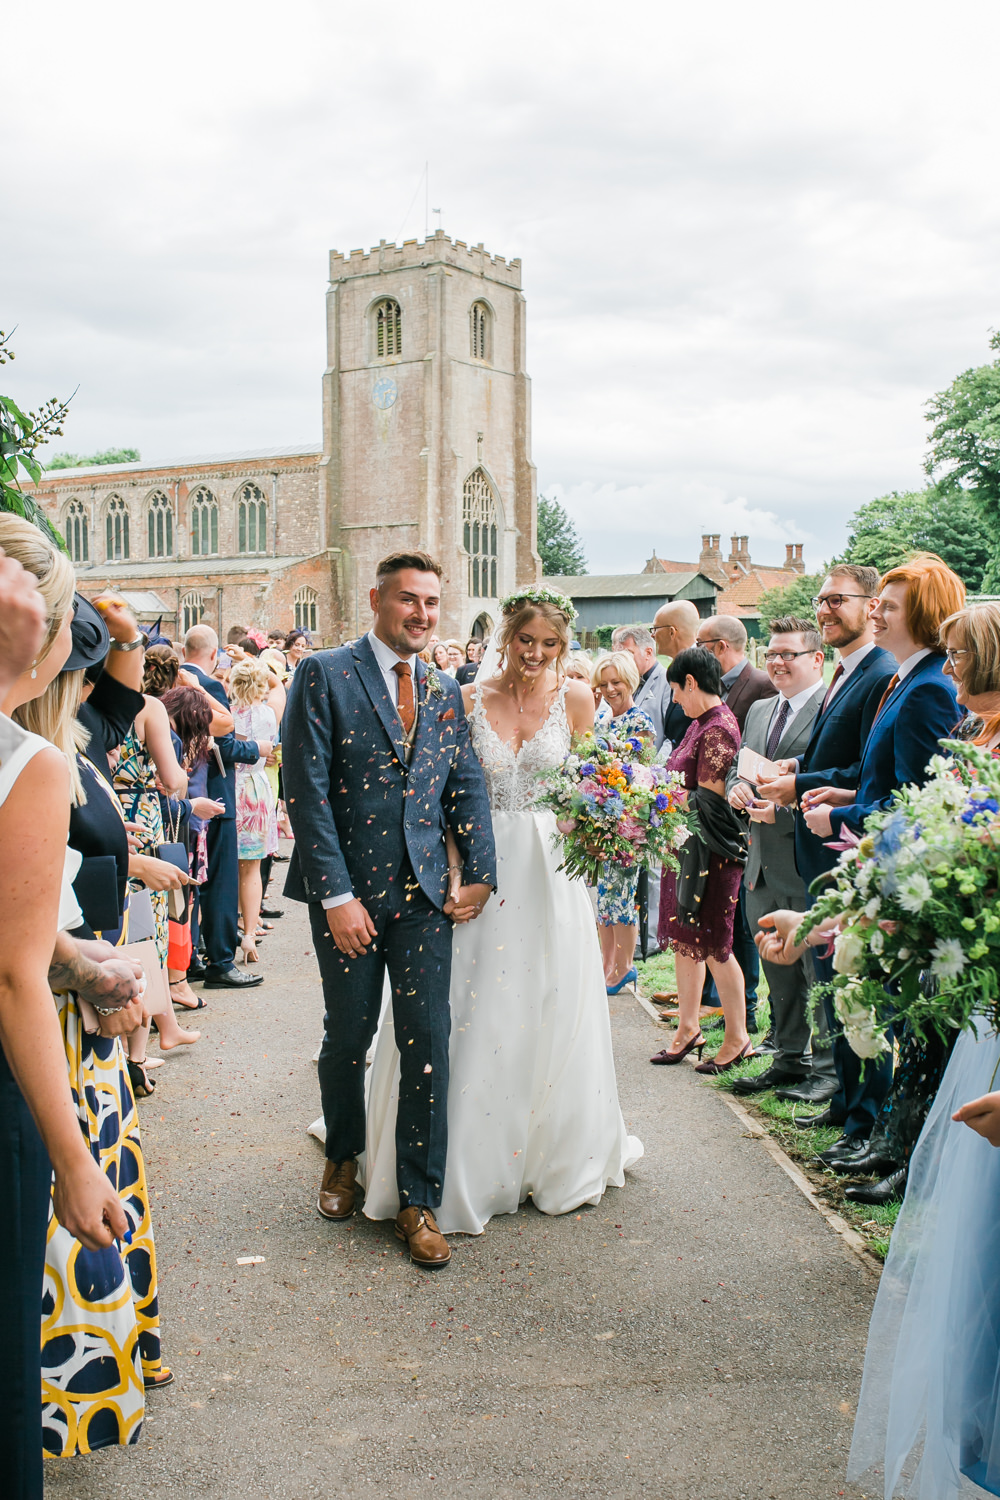 Bride Bridal V Neck A Line Dress Gown Lace Edged Veil Flower Crown Multicoloured Bouquet Tweed Suit Groom Confetti Lincolnshire Tipi Wedding Jessy Jones Photography